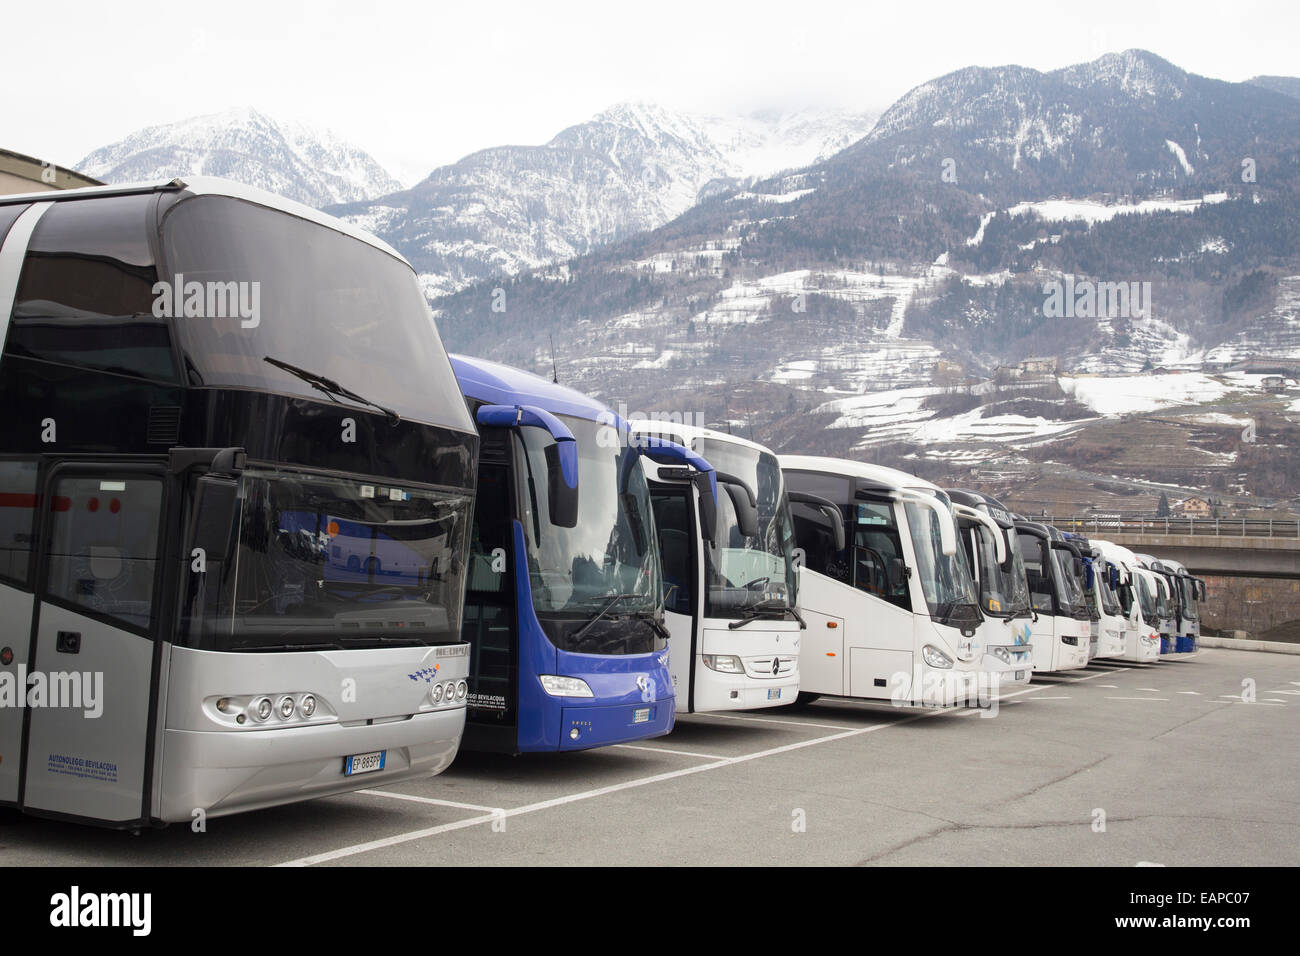 Holiday coaches at ski resort Pila Valle du0027Aoste Italy. Car park at the bottom of the chair lift. Skiing package tours & Holiday coaches at ski resort Pila Valle du0027Aoste Italy. Car park ...